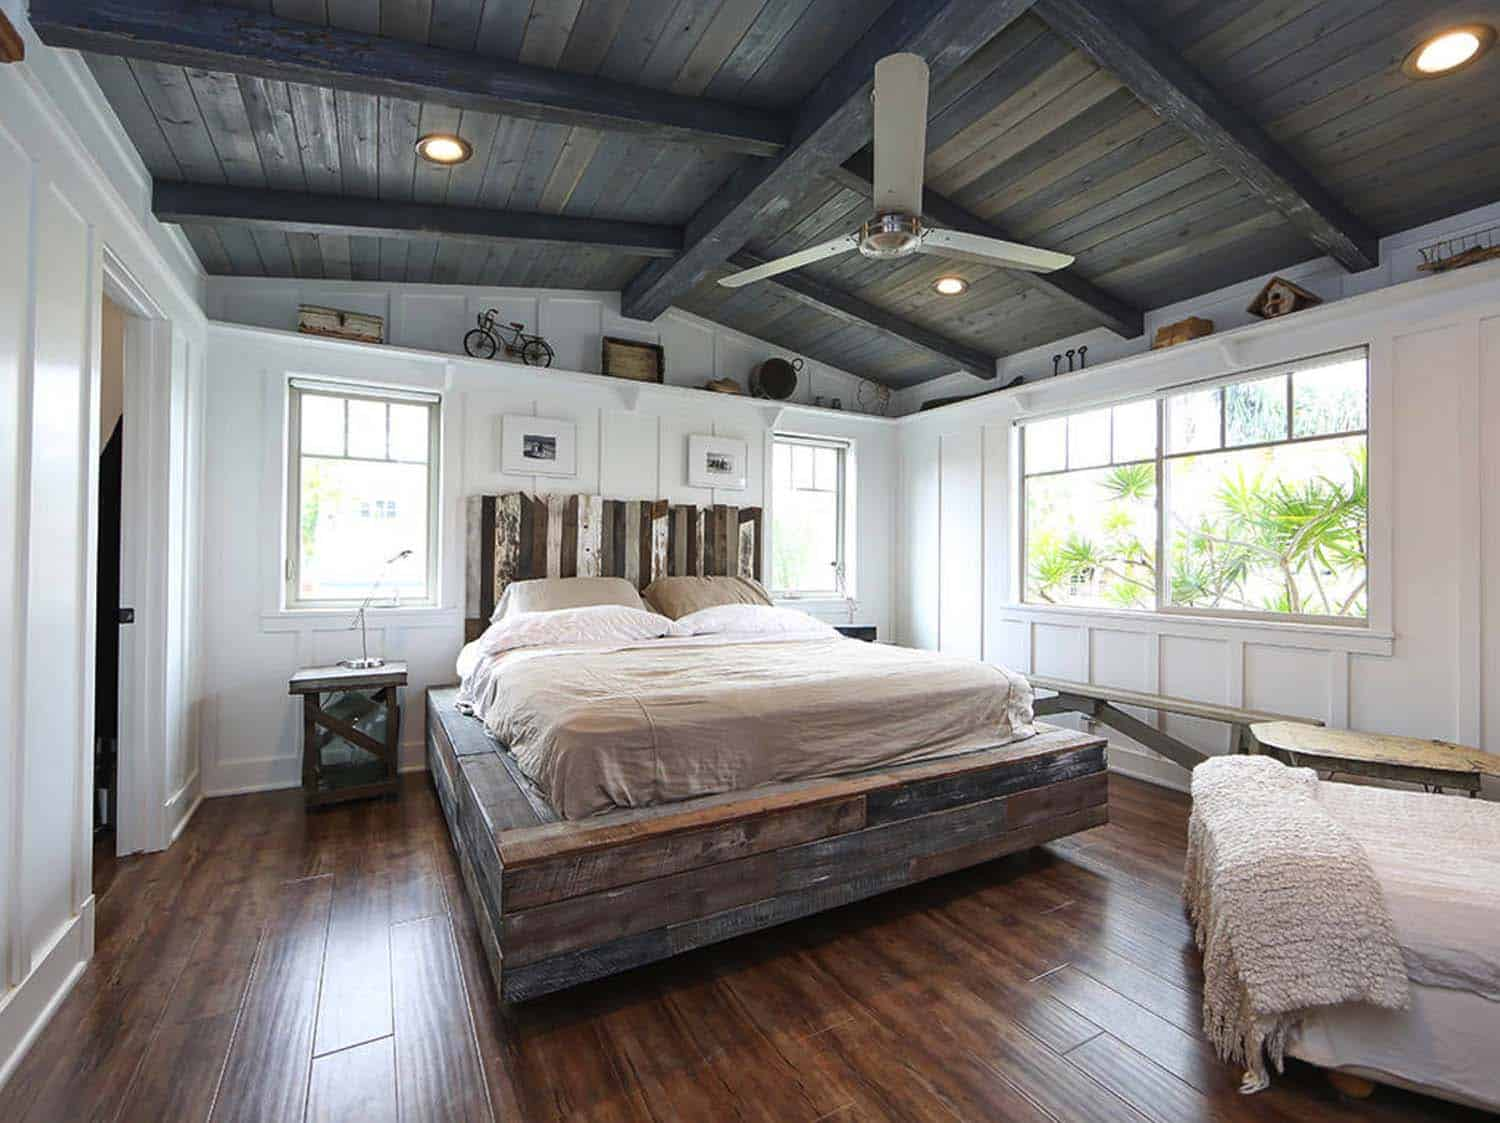 Craftsman style dream home in California showcasing reclaimed materials